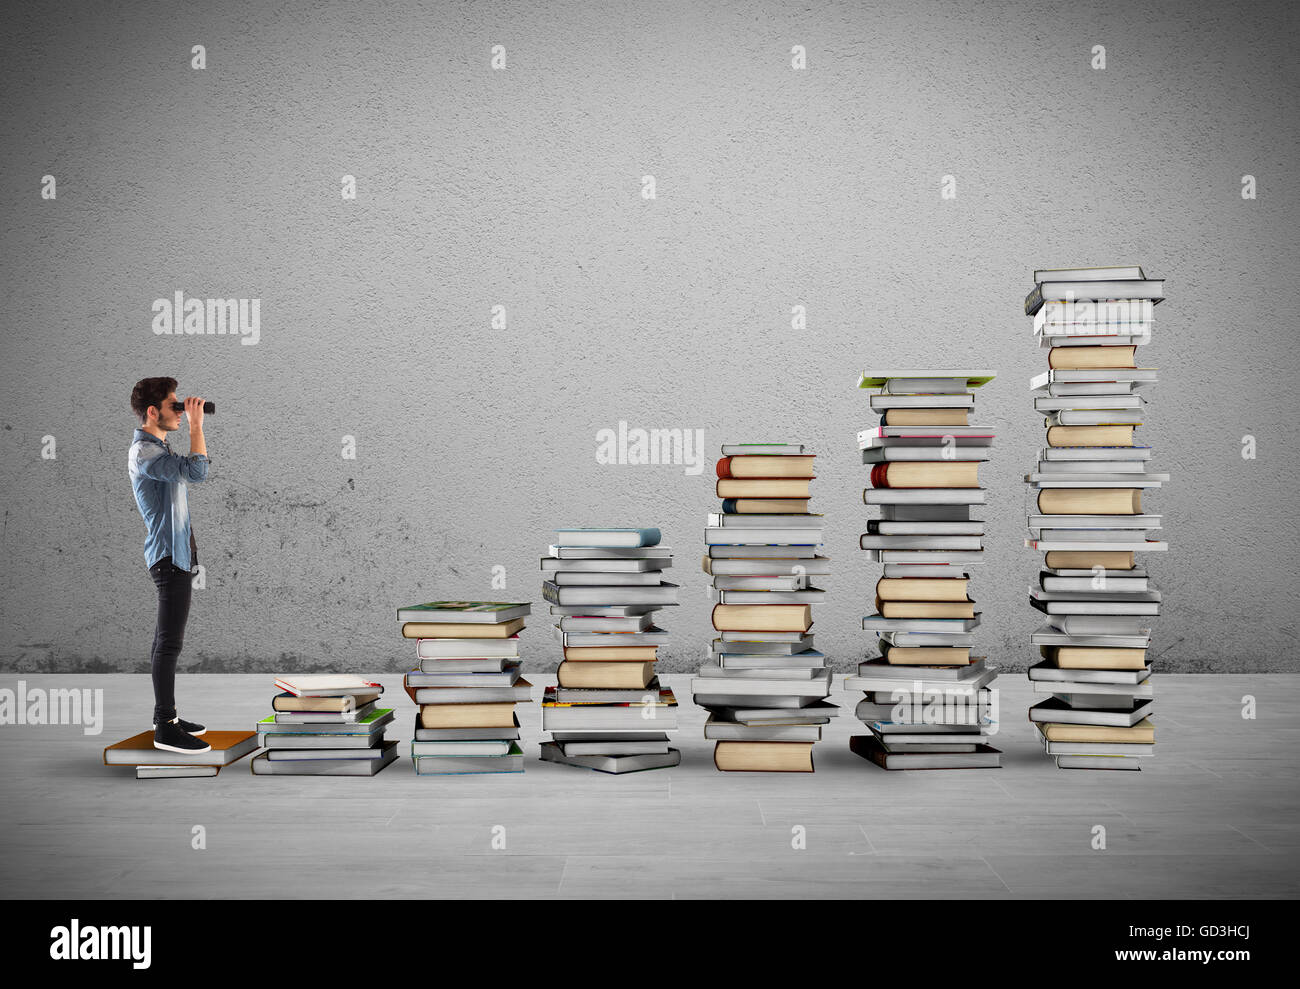 Course of study - Stock Image